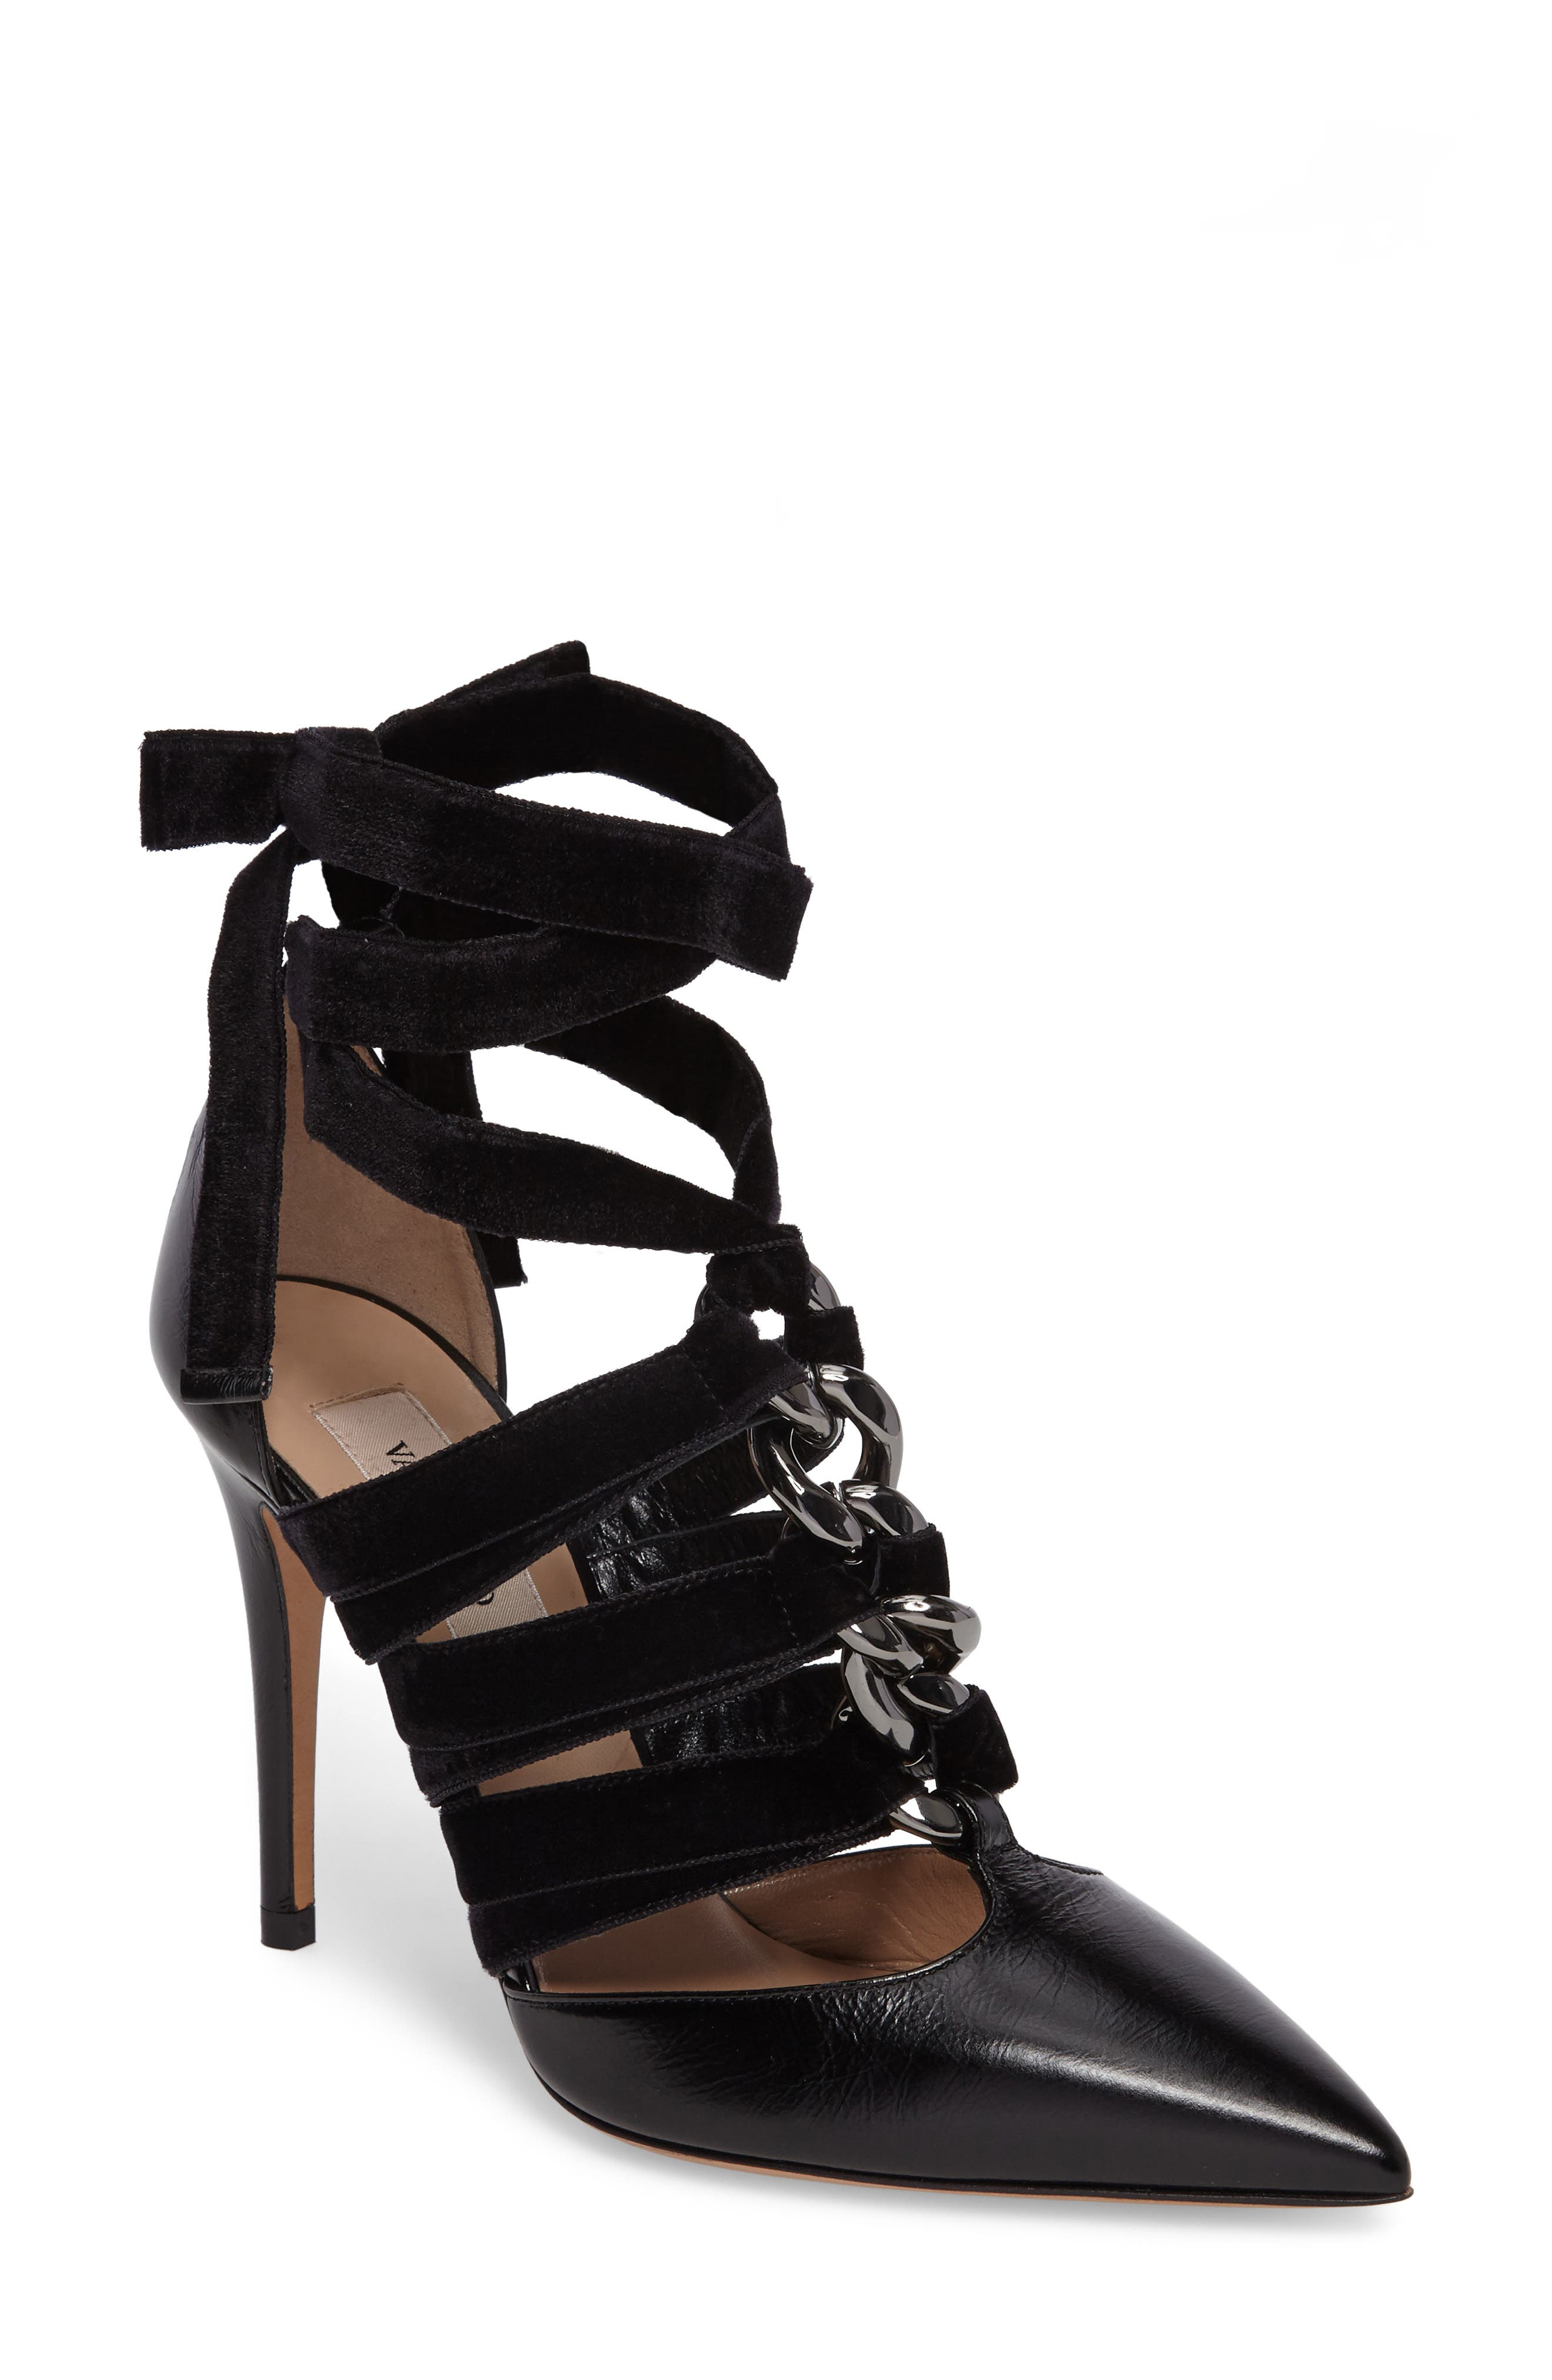 Velvet Rope Pointy-Toe Pump,                             Main thumbnail 1, color,                             Black Leather